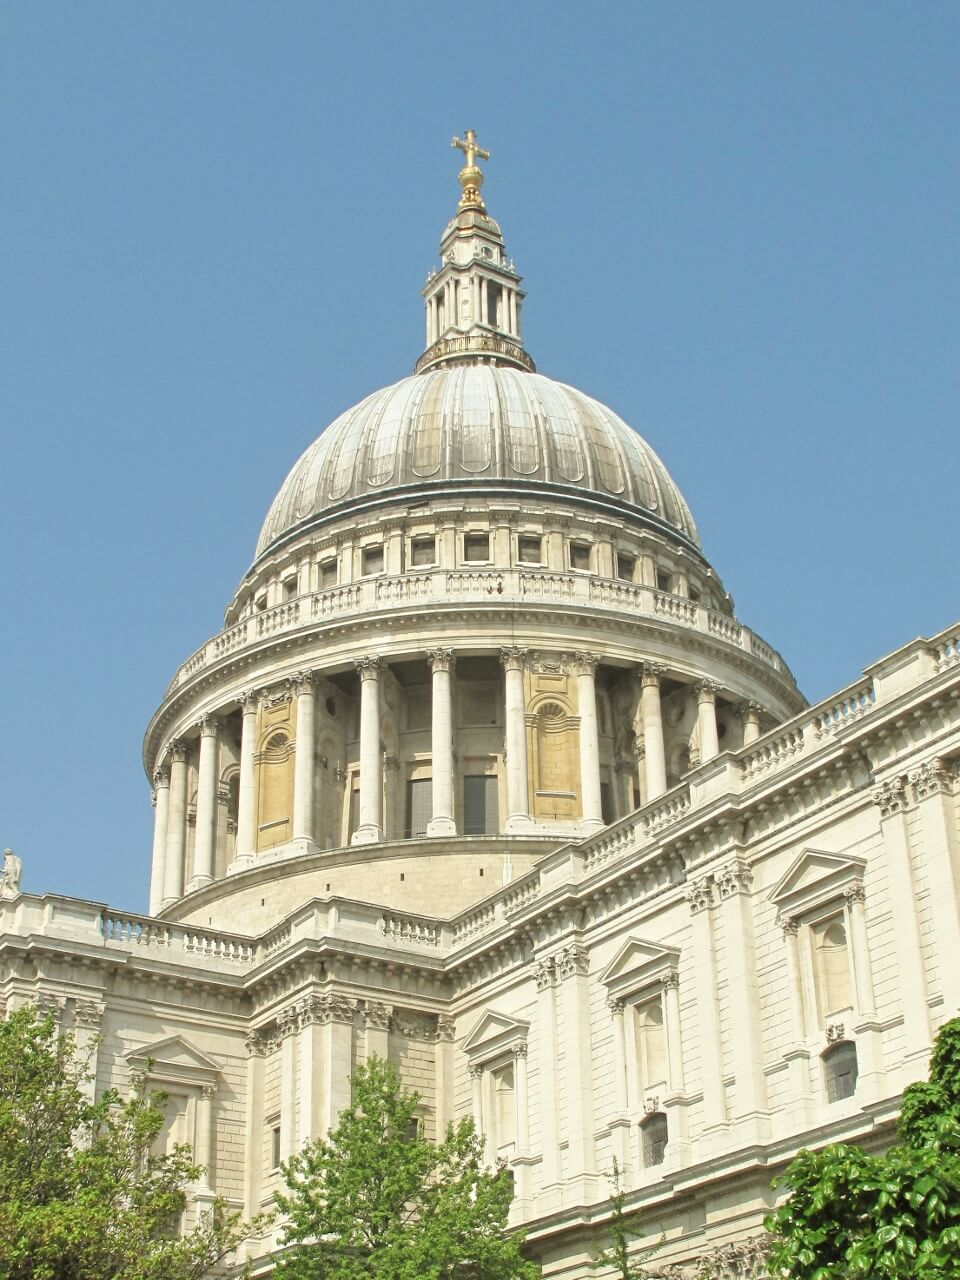 View of the dome of St Paul's Cathedral against a blue sky